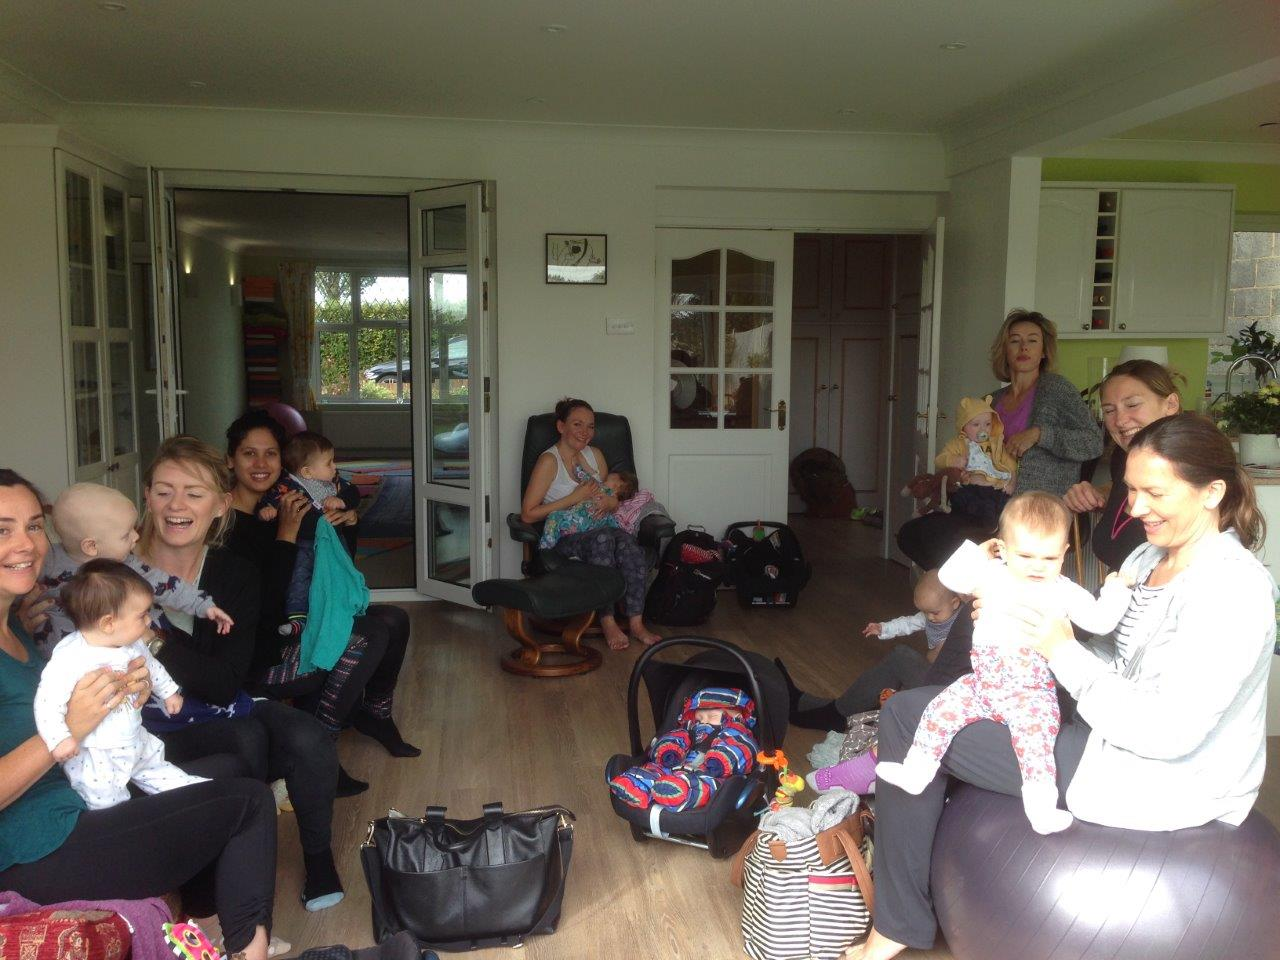 Mums with babies before postnatal yoga class